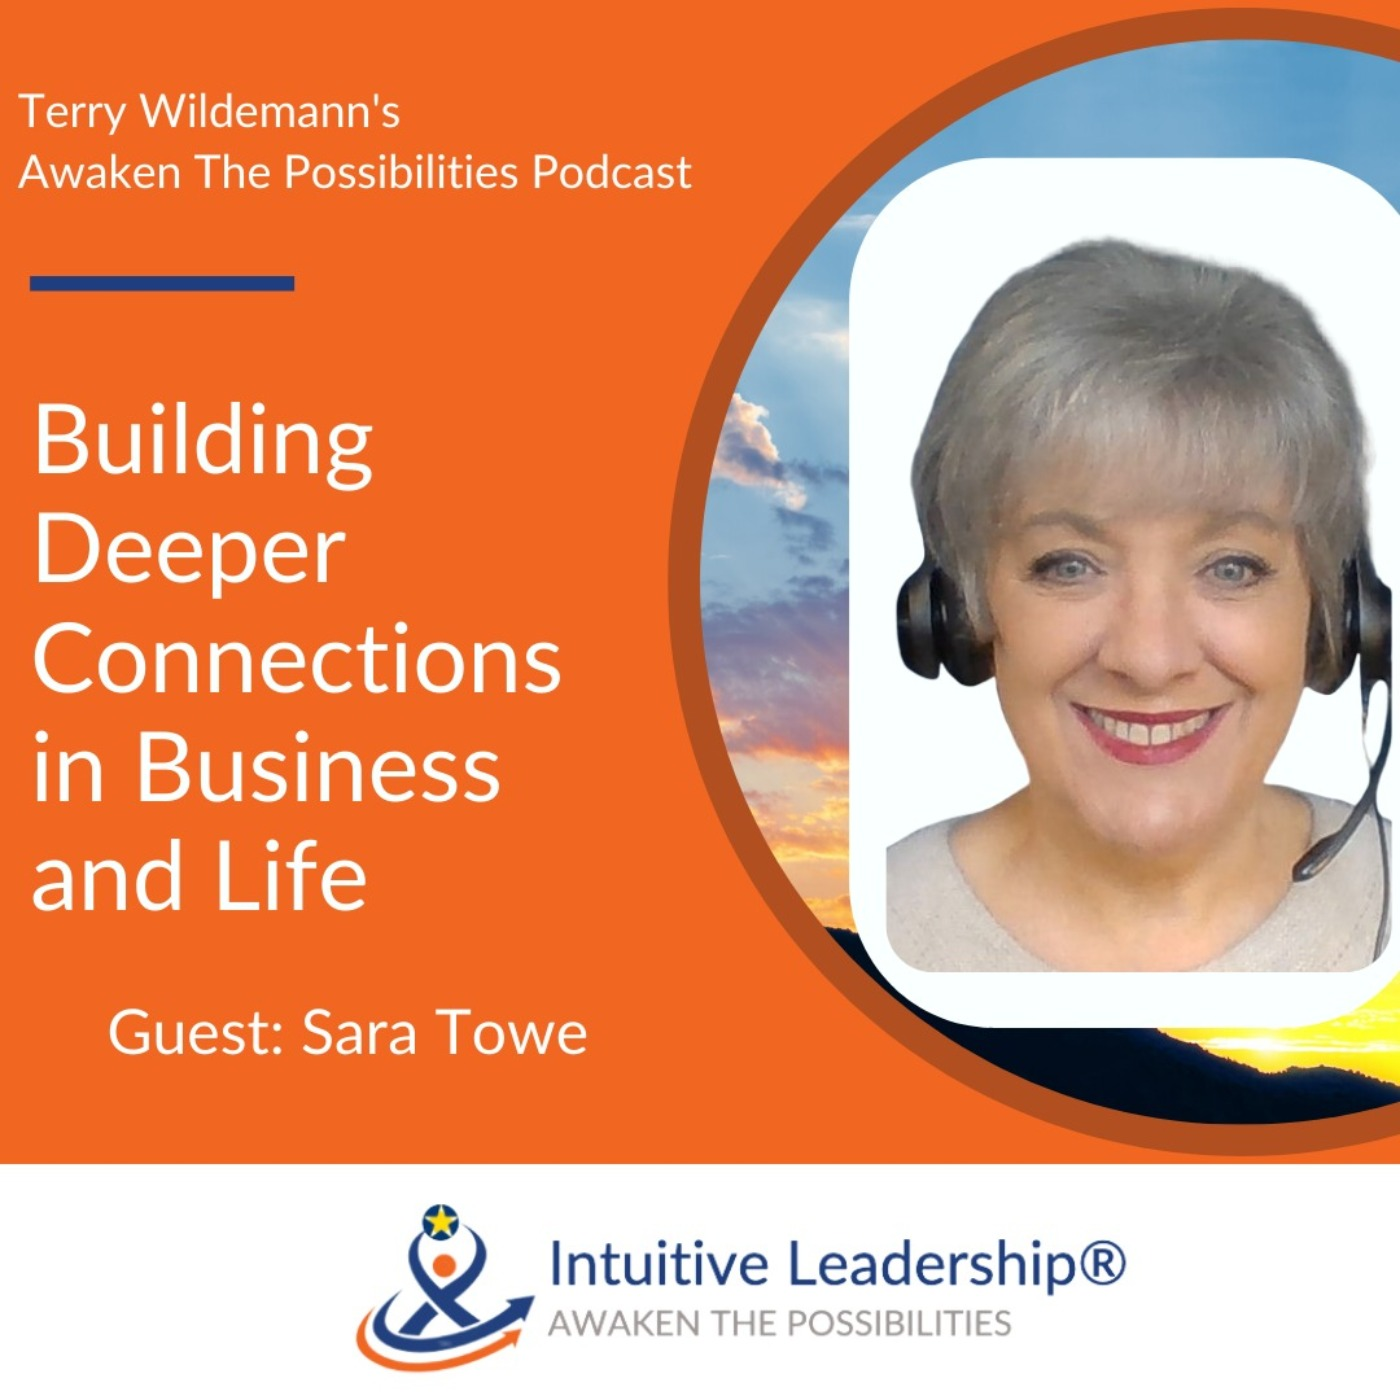 Awaken The Possibilities: Building Deeper Connections in Business